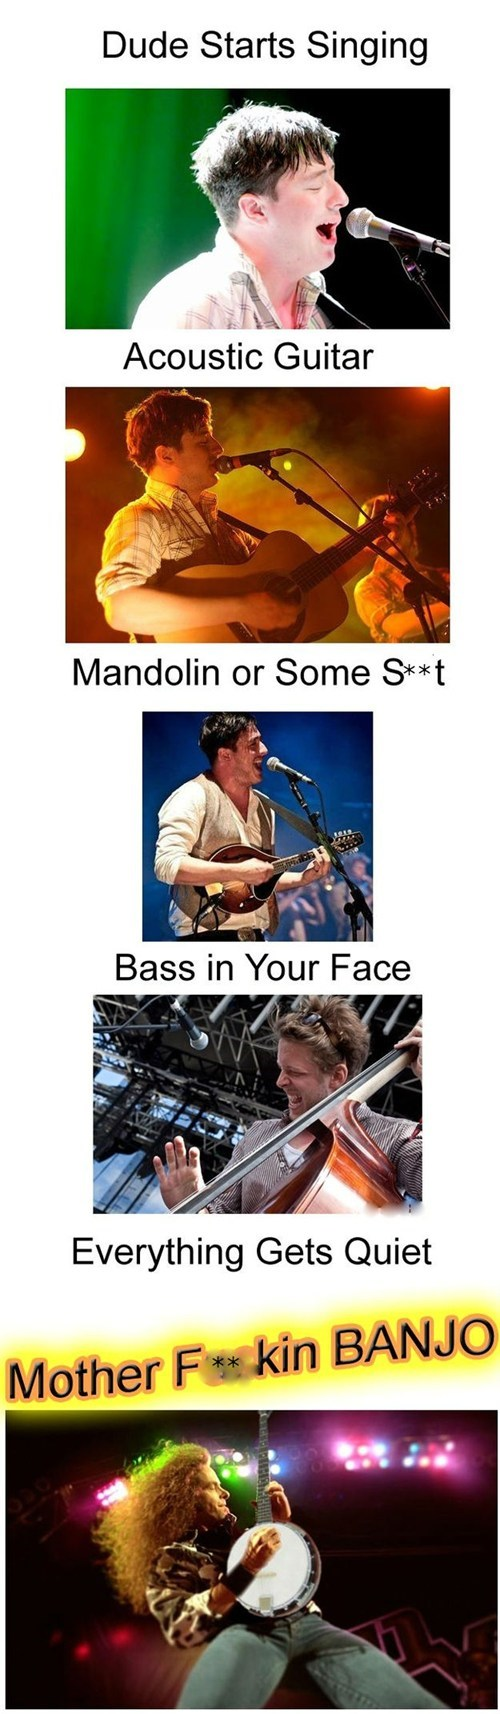 banjo mumford and sons formulas Music FAILS - 7264897280